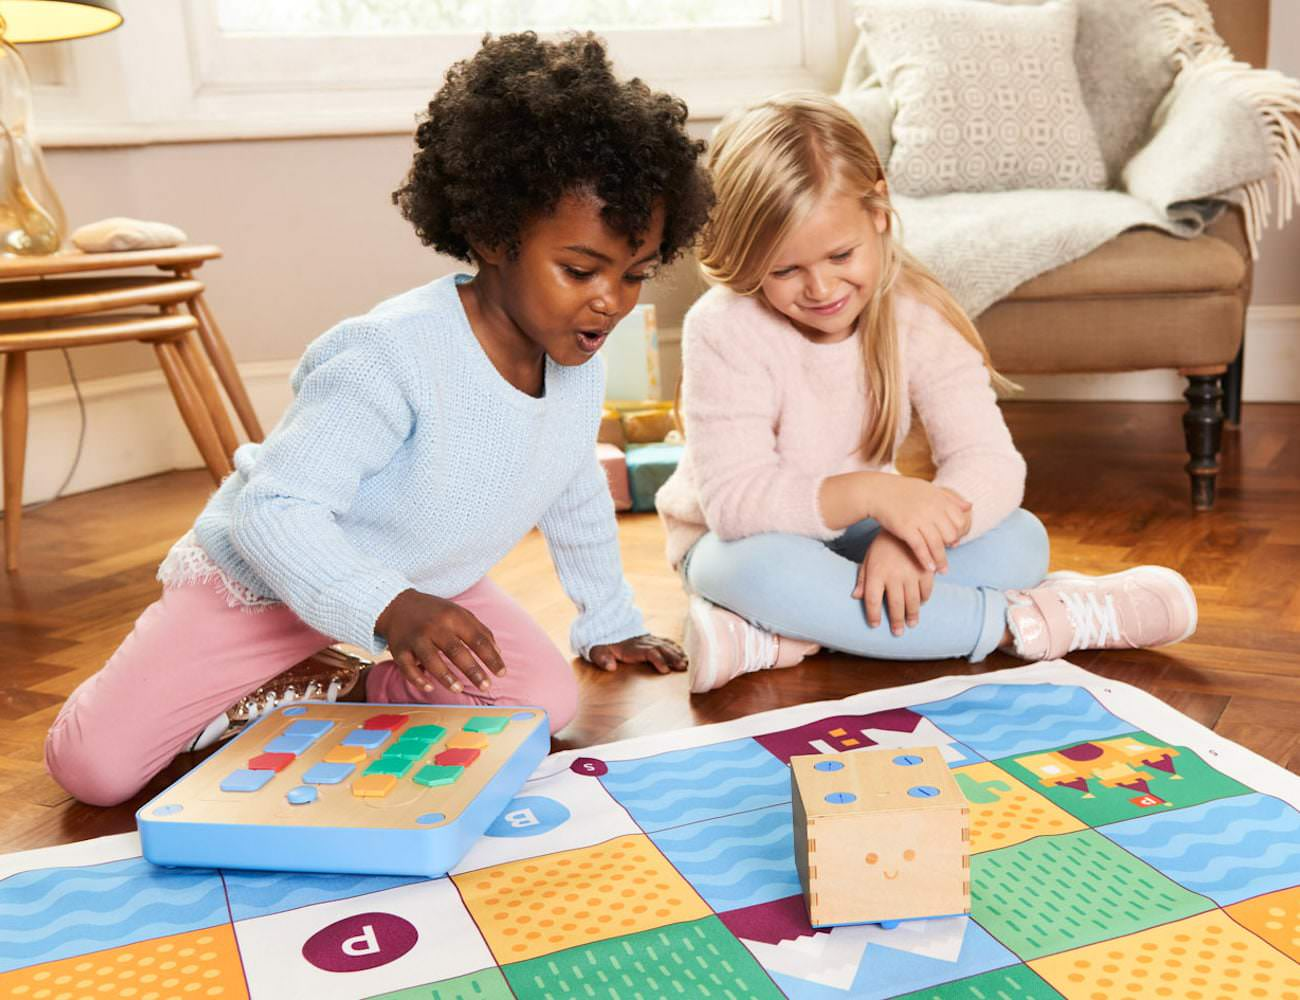 Cubetto is teaching children of the world how to code